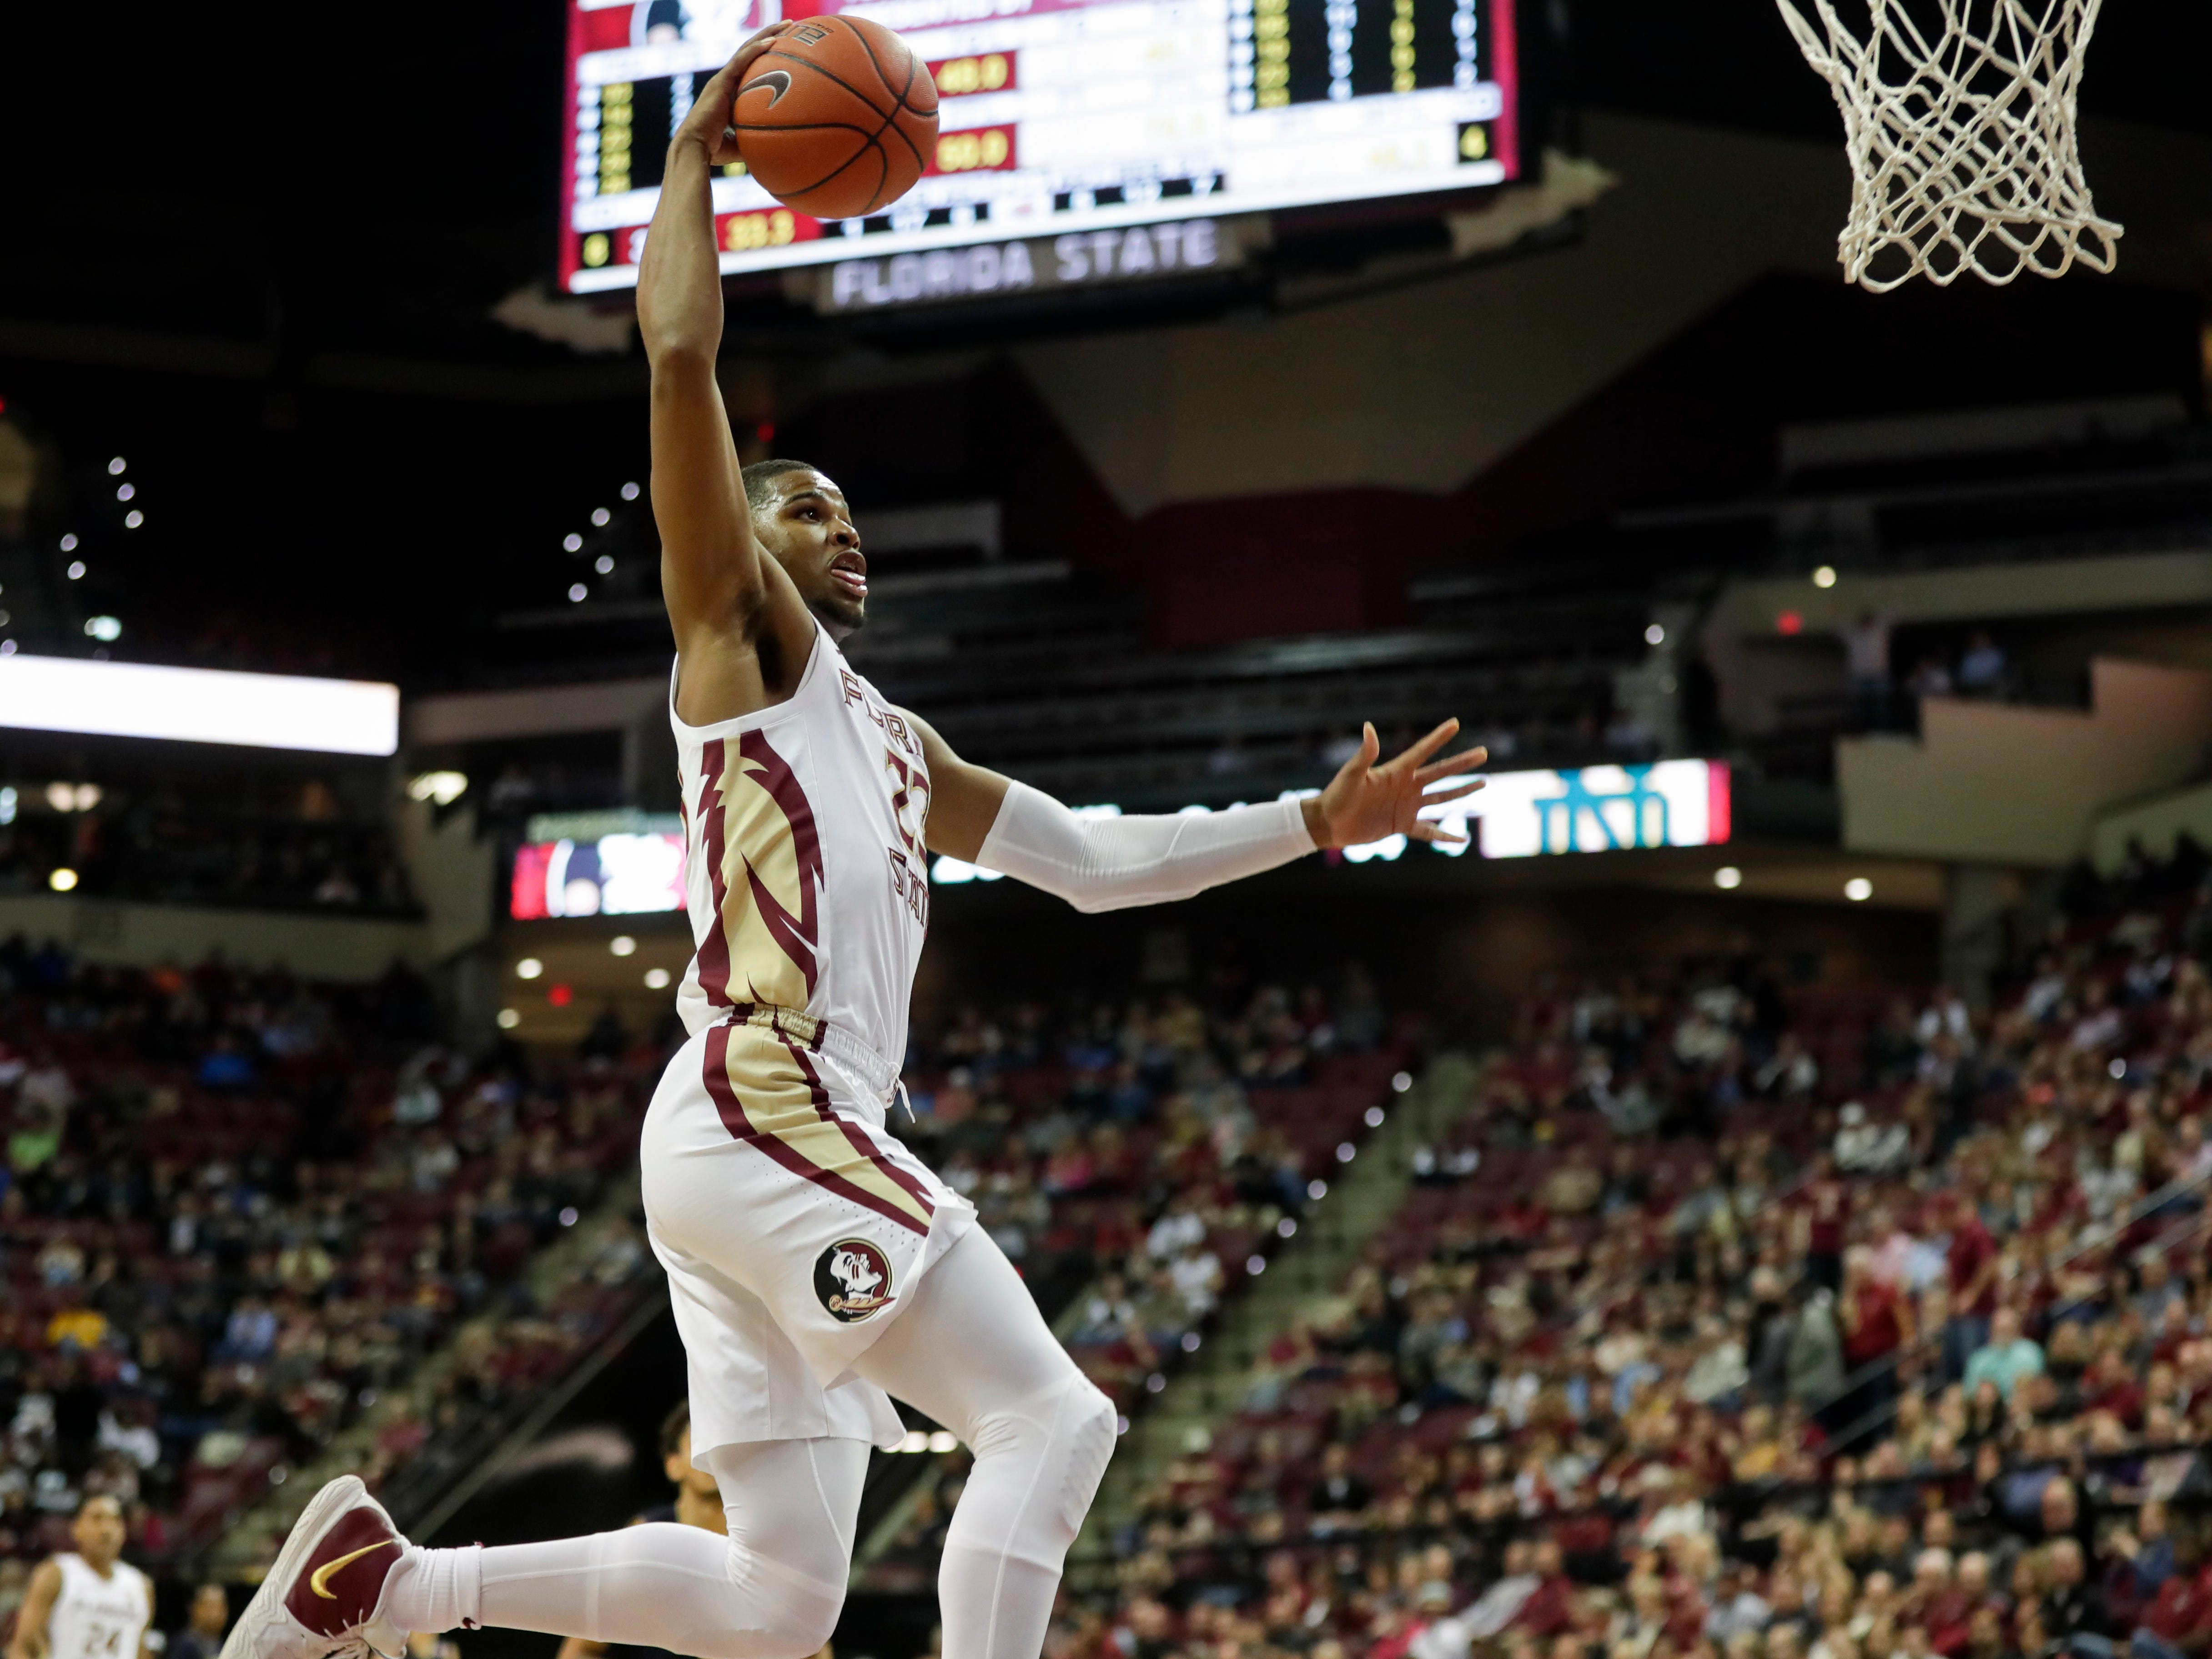 Florida State Seminoles guard M.J. Walker (23) goes up for a dunk during a game between FSU and Notre Dame at the Donald L. Tucker Civic Center Monday, Feb. 25, 2019.